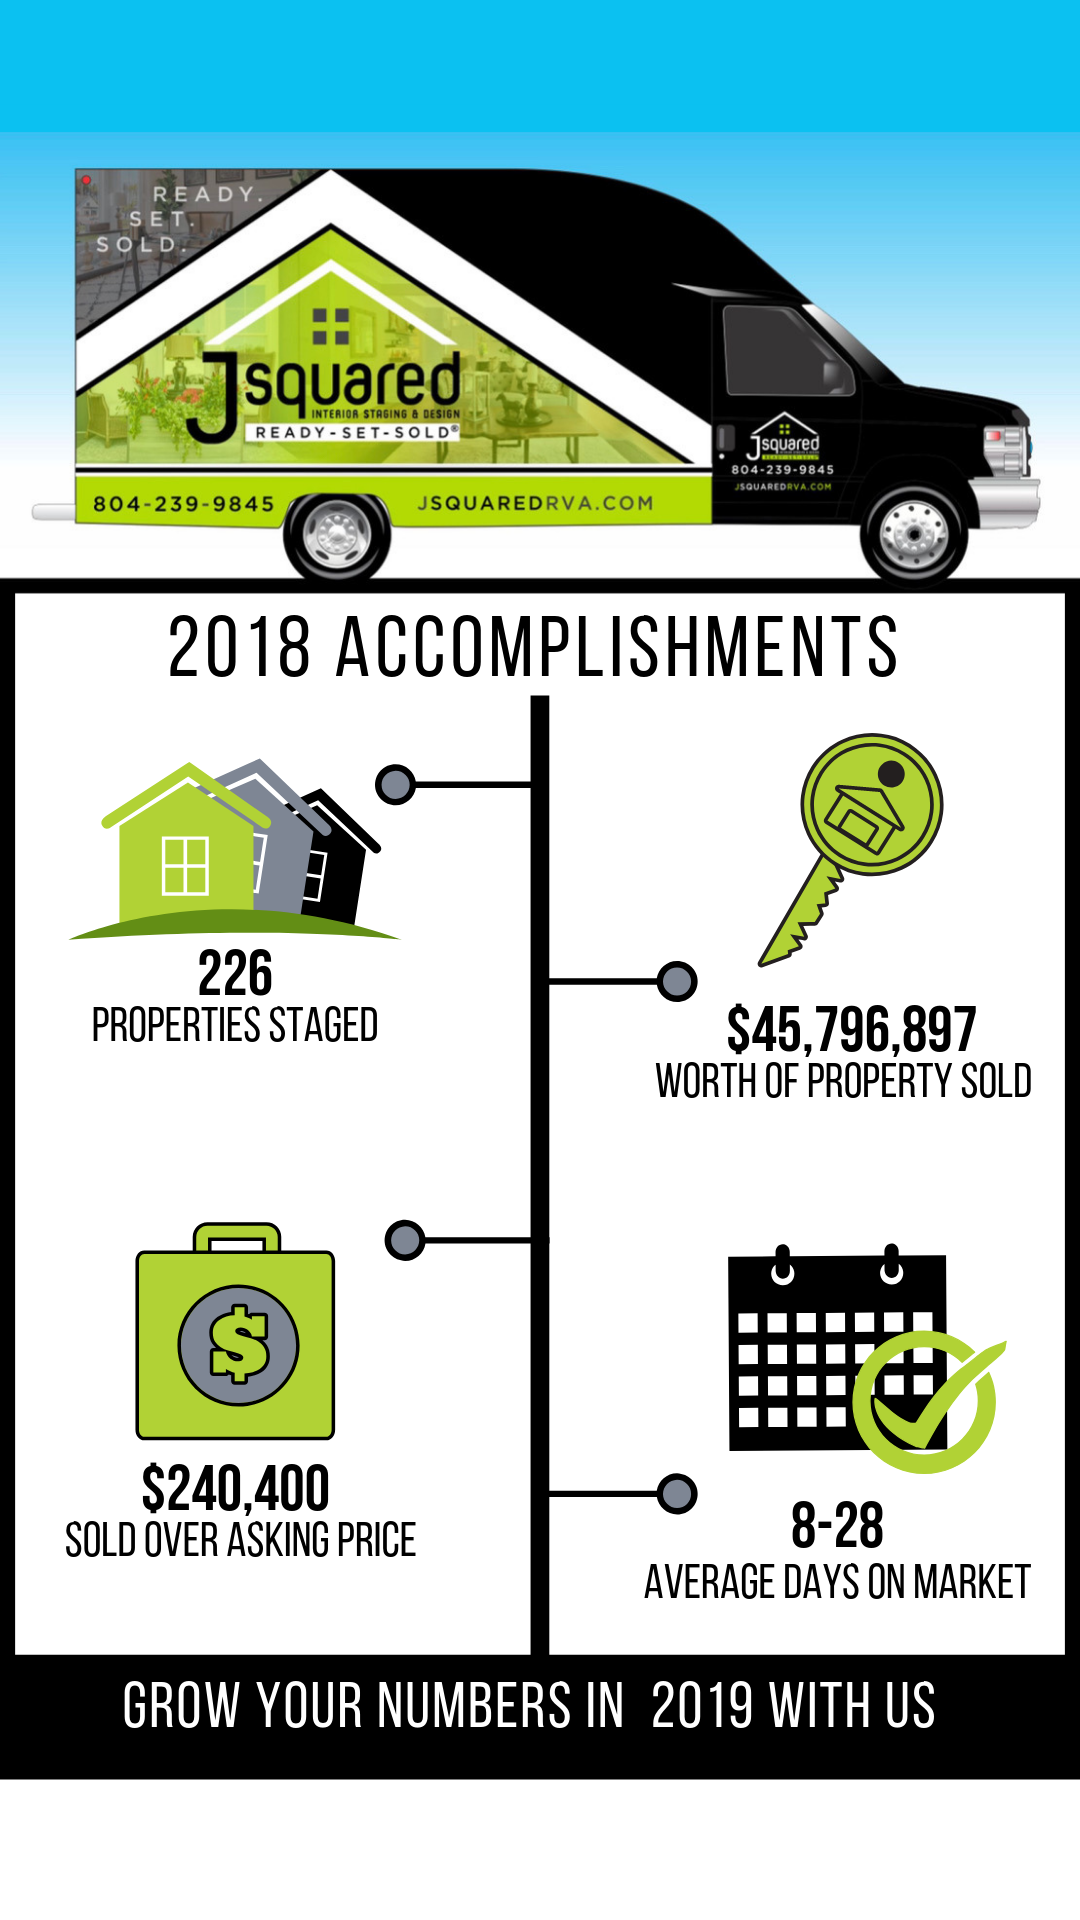 Copy of 2018 Accomplishments-3.png